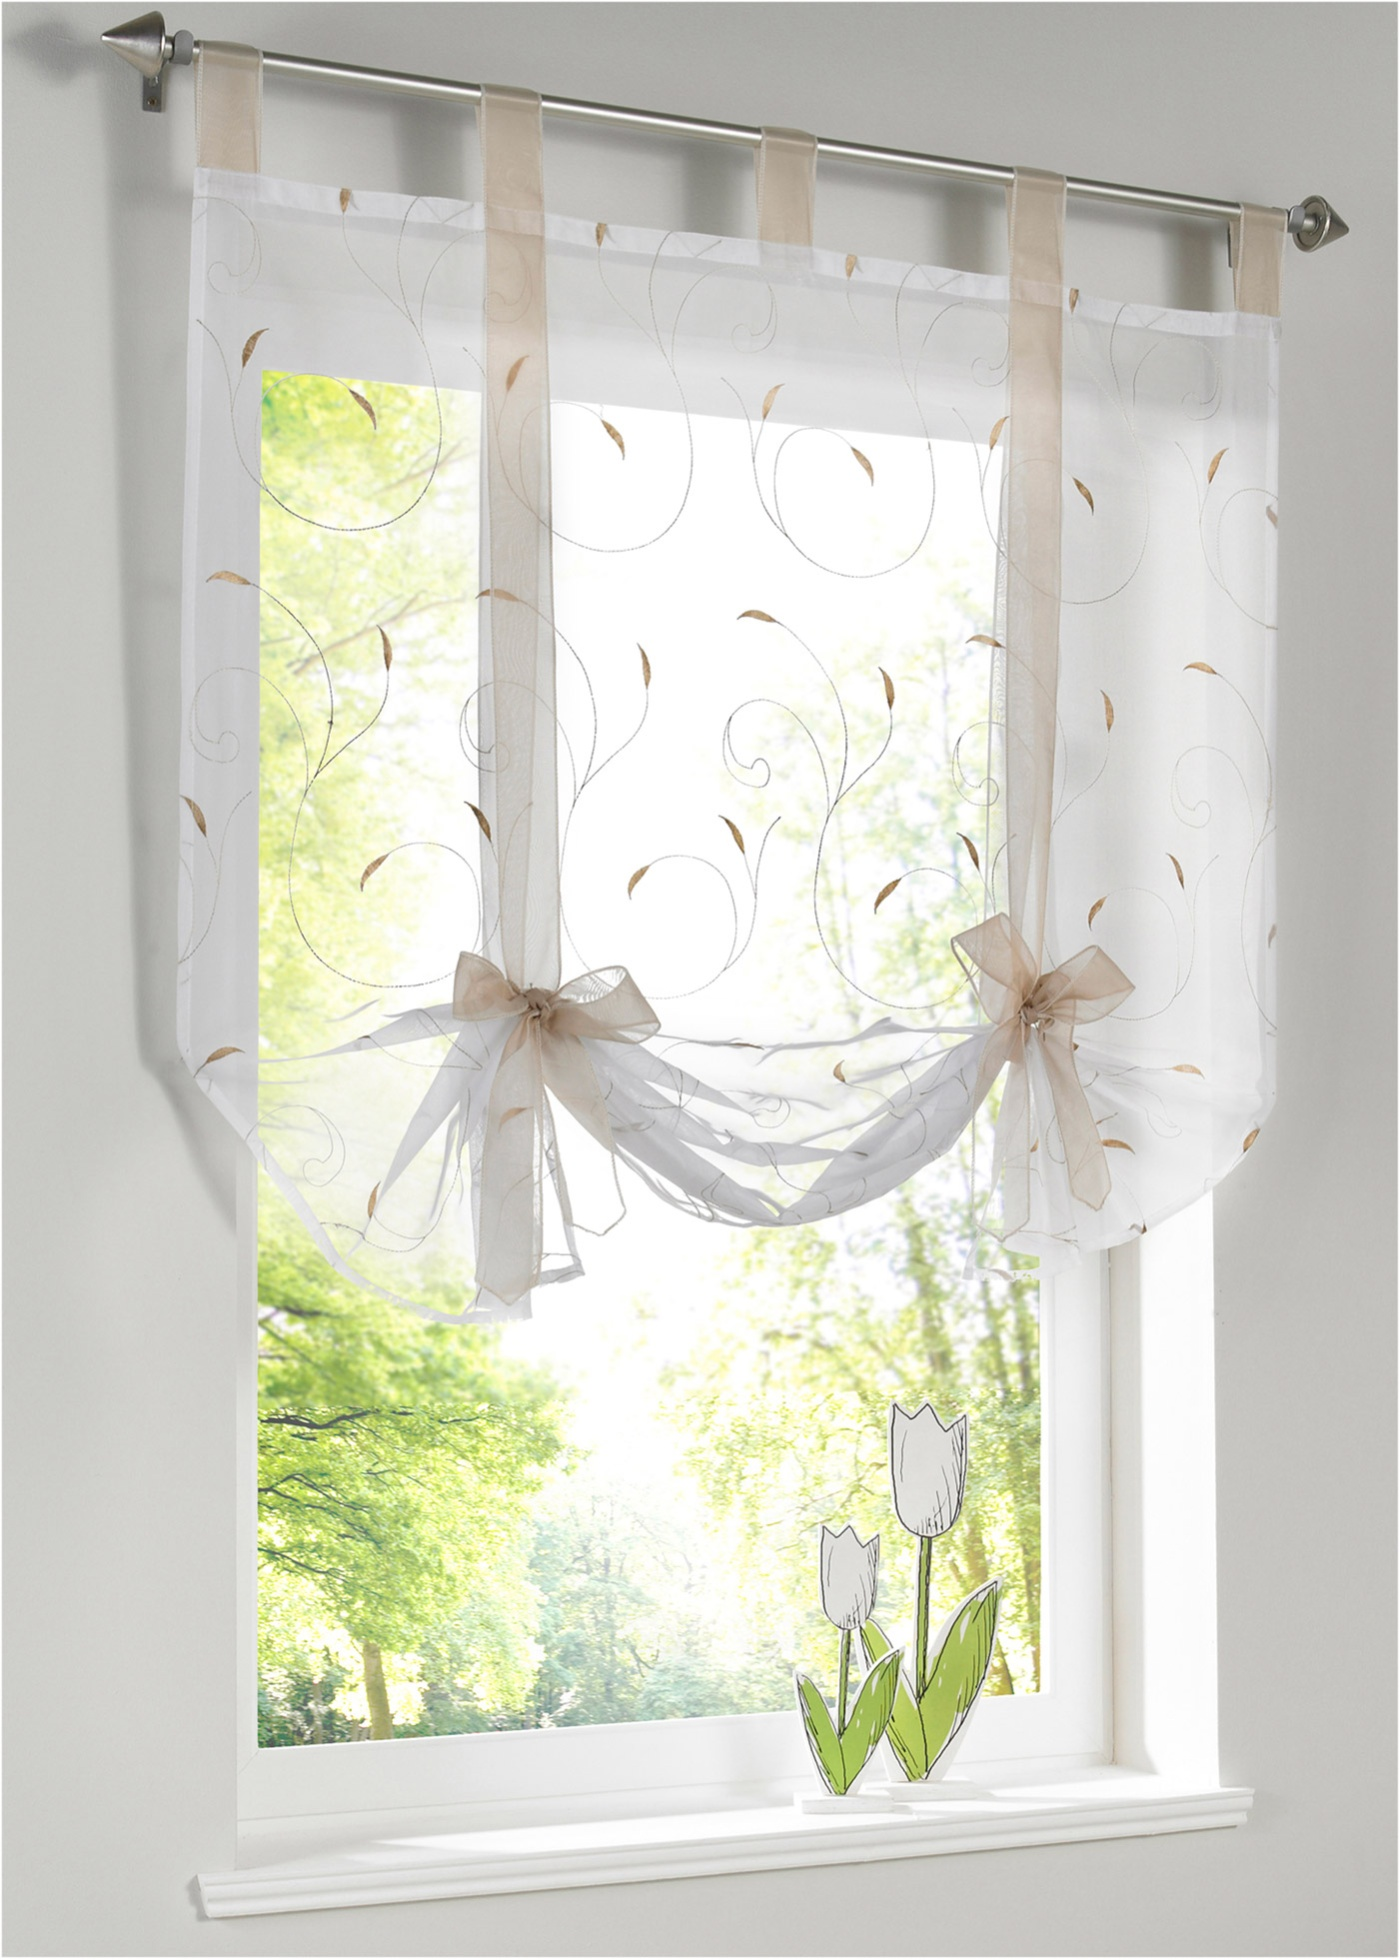 Printed-Line Shade Pastoral Style Window Decor for Kitchen